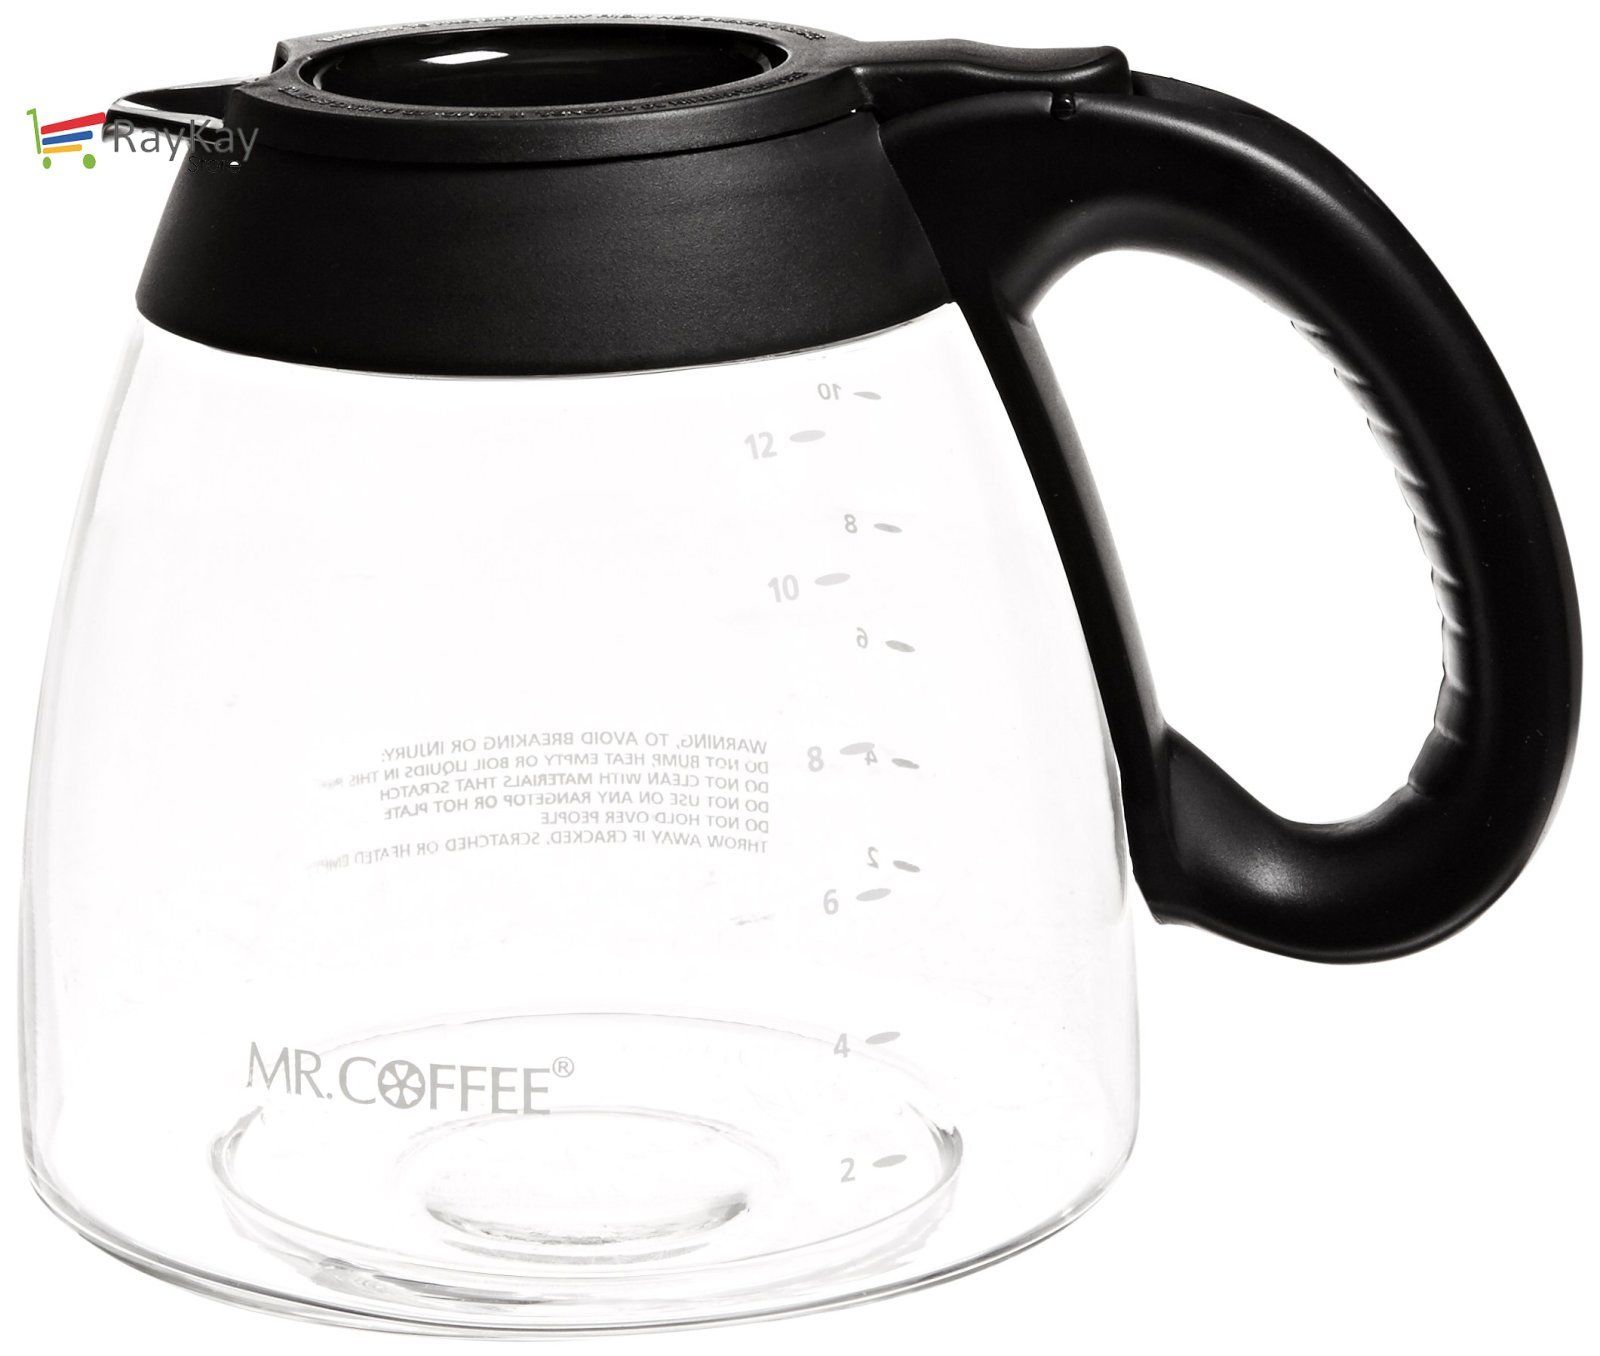 Mr. Coffee Coffee Decanters Home & Garden 4 cup coffee